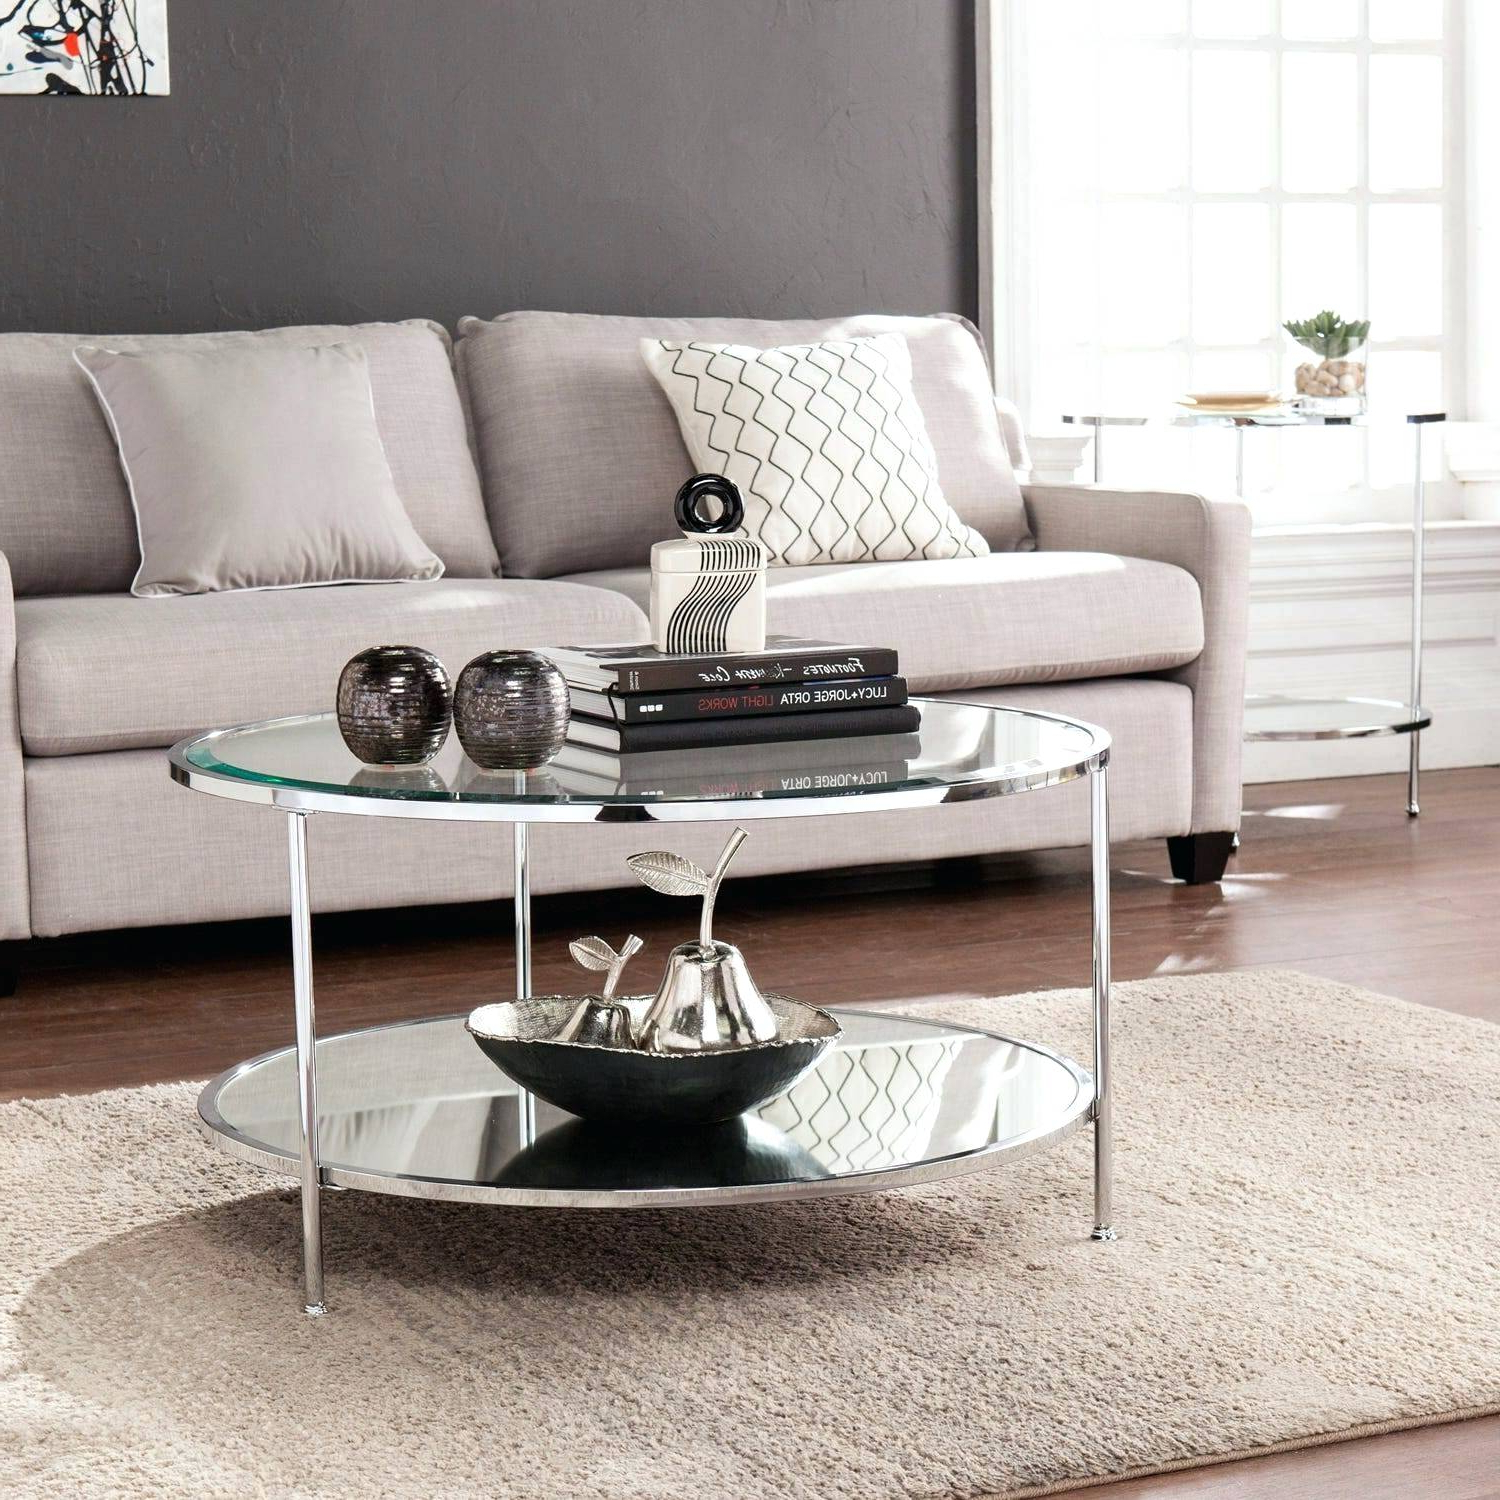 2020 Thalberg Contemporary Chrome Coffee Tables By Foa Intended For Chrome Coffee Table – Cordellmcpeters (View 2 of 20)